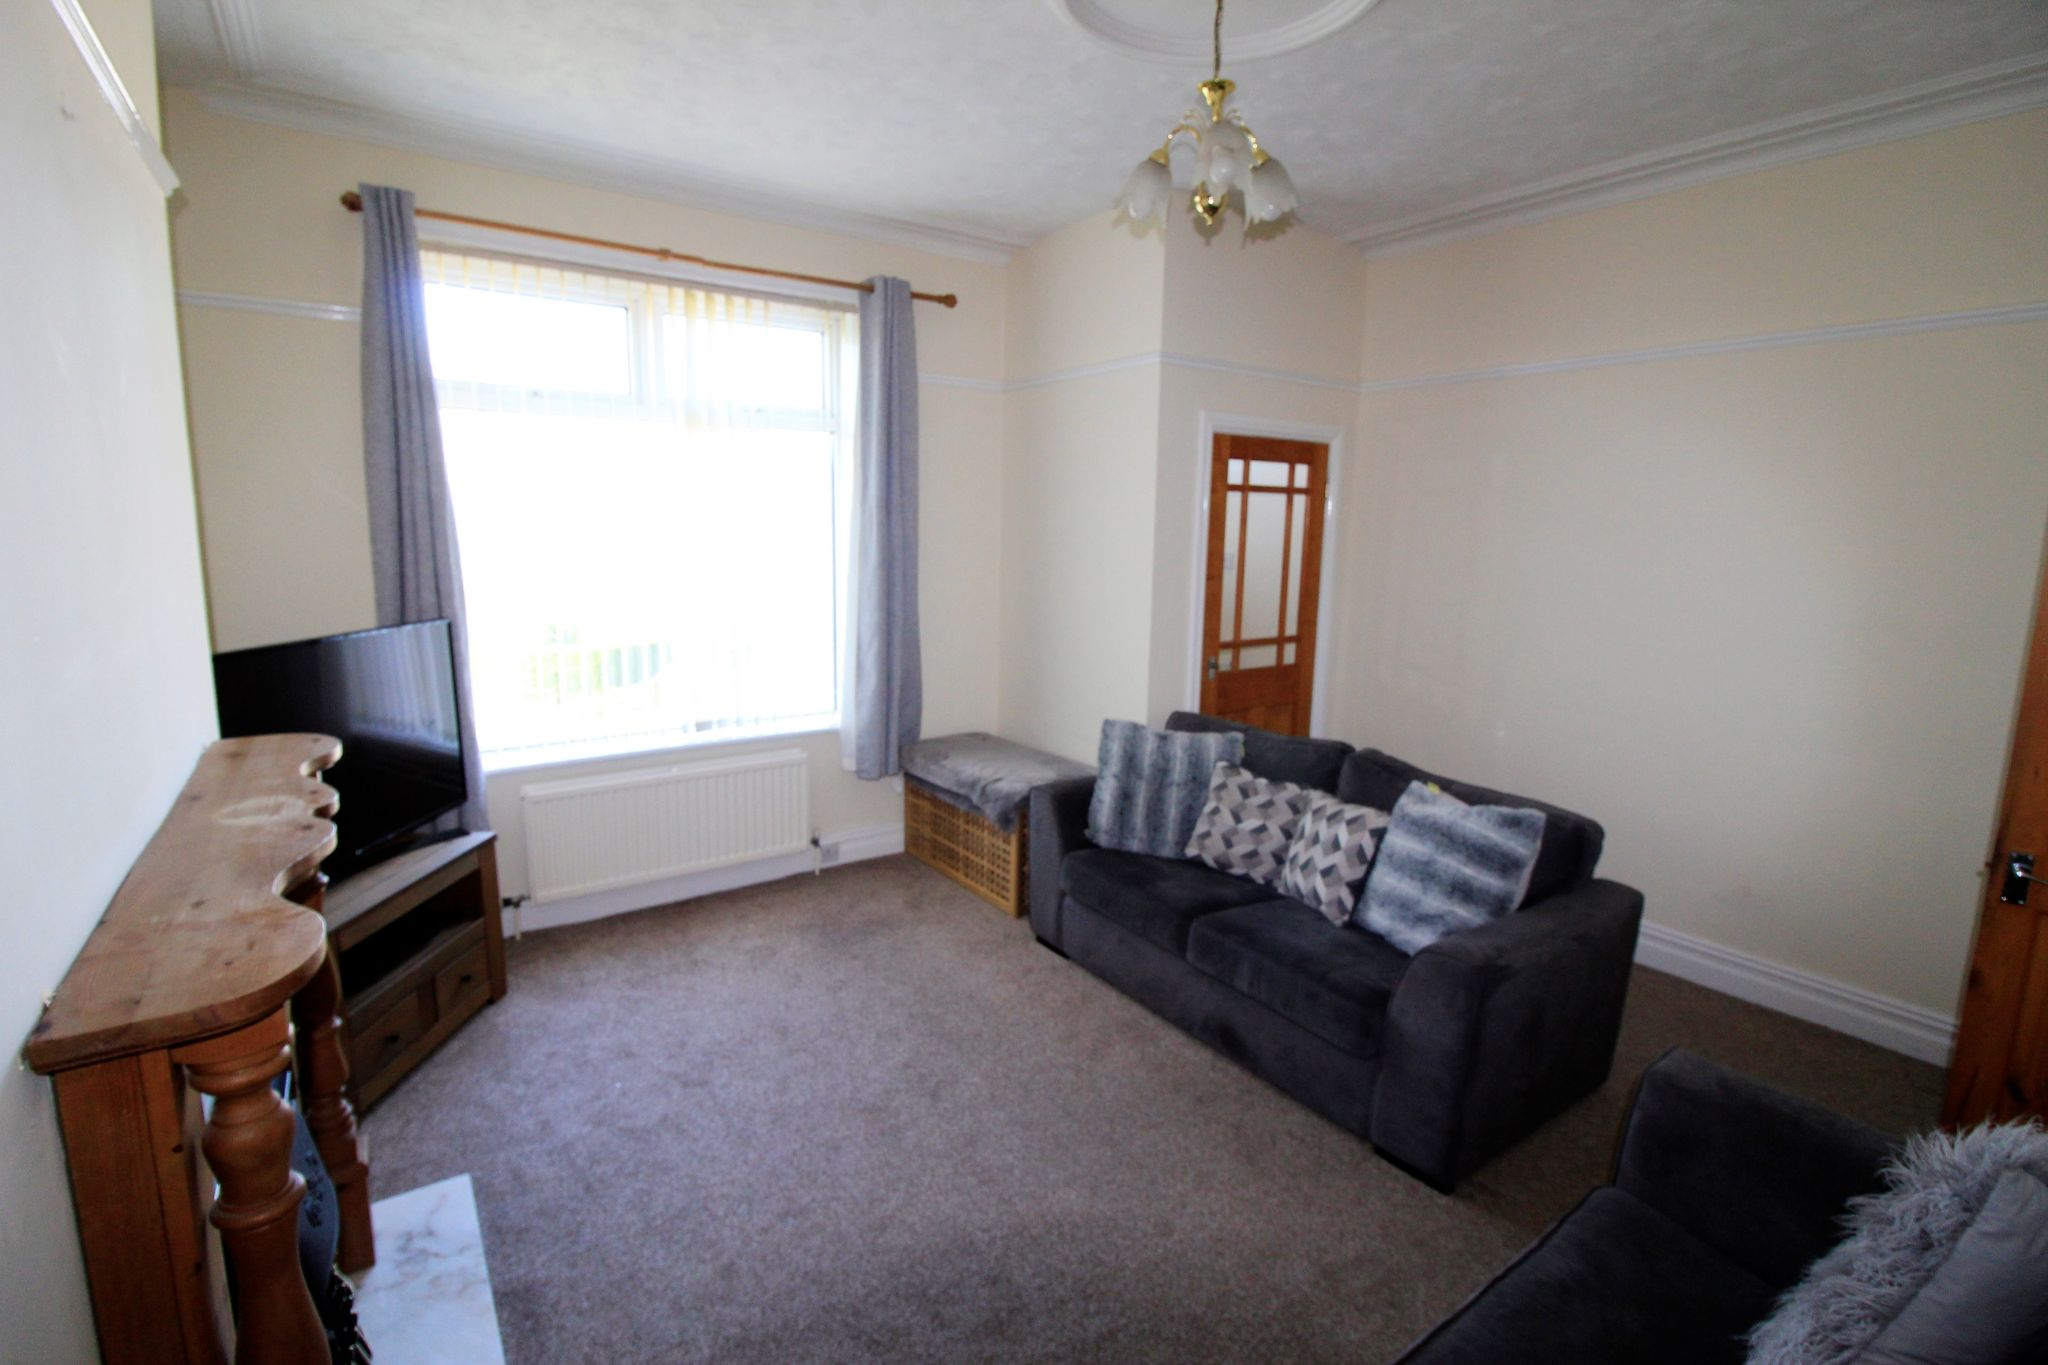 2 bedroom end terraced house SSTC in Brighouse - Photograph 7